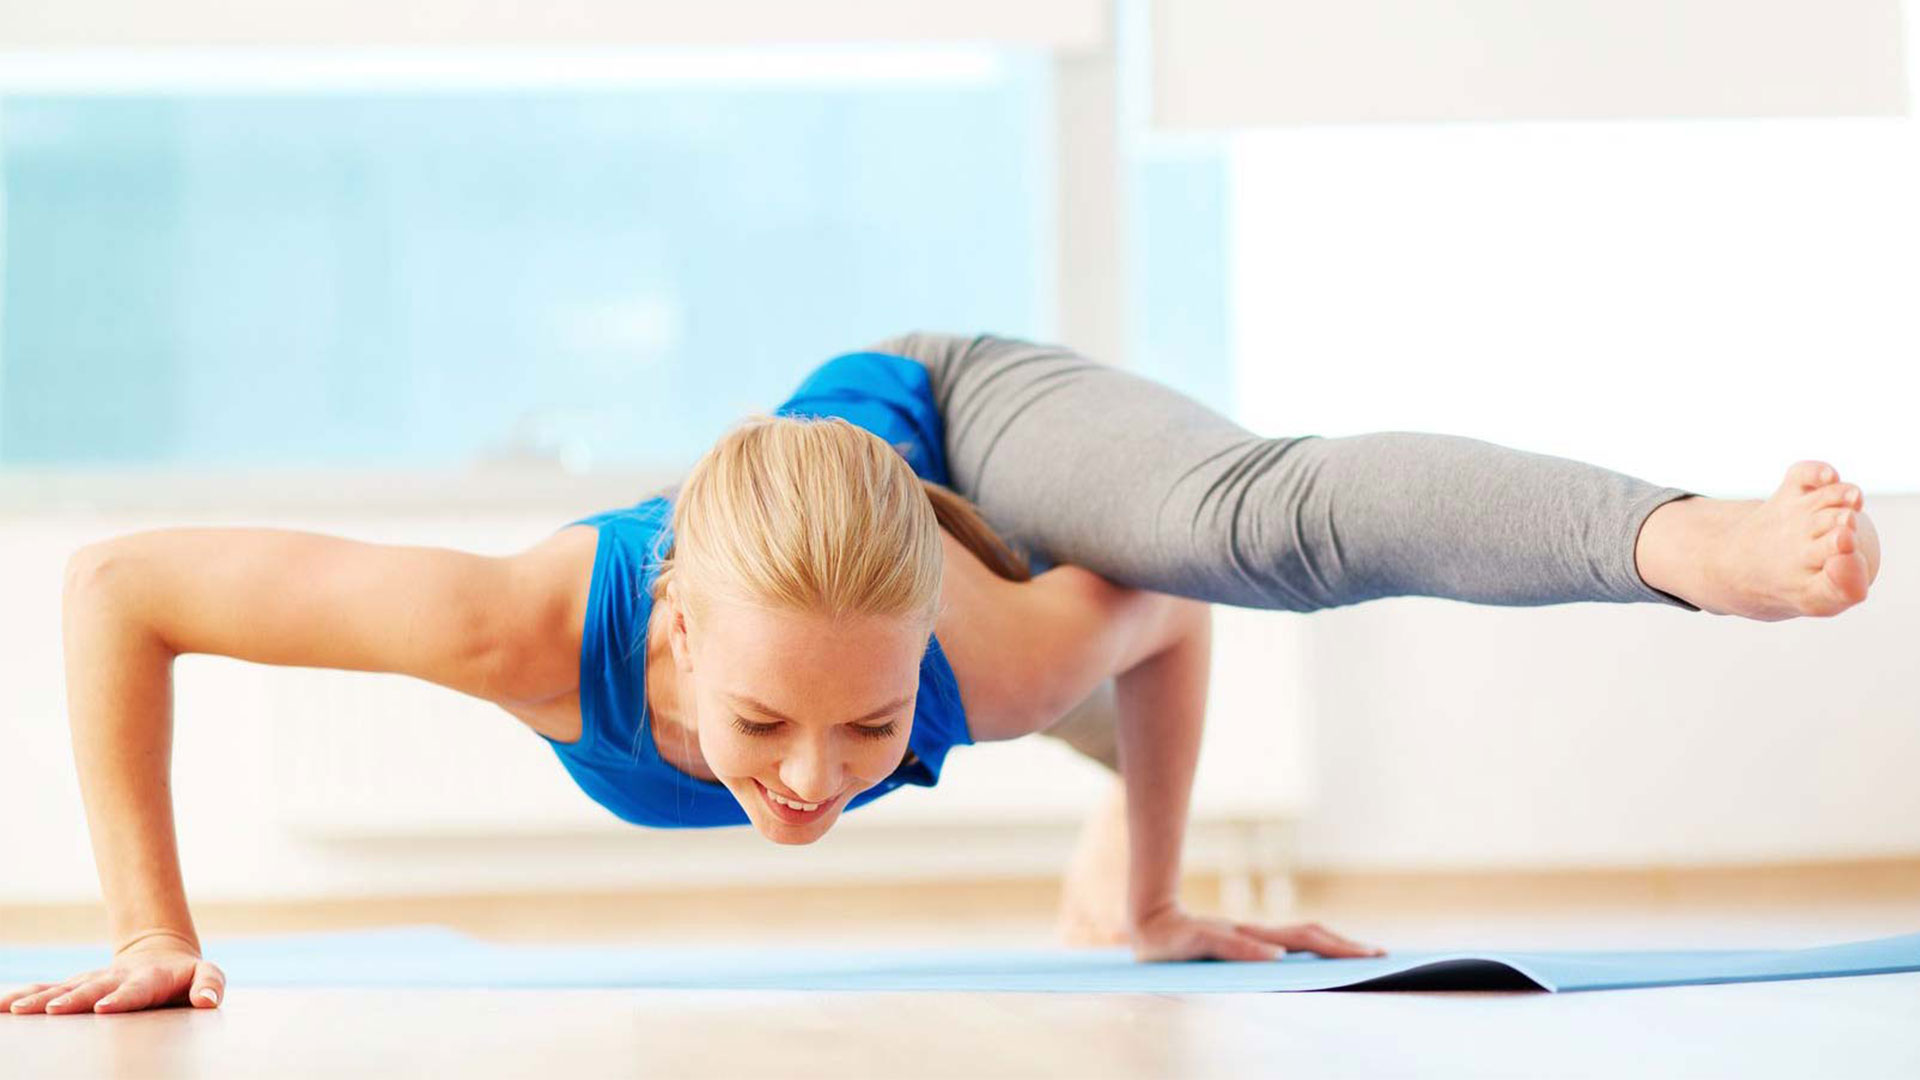 What are the benefits of practicing Ashtanga yoga? 3